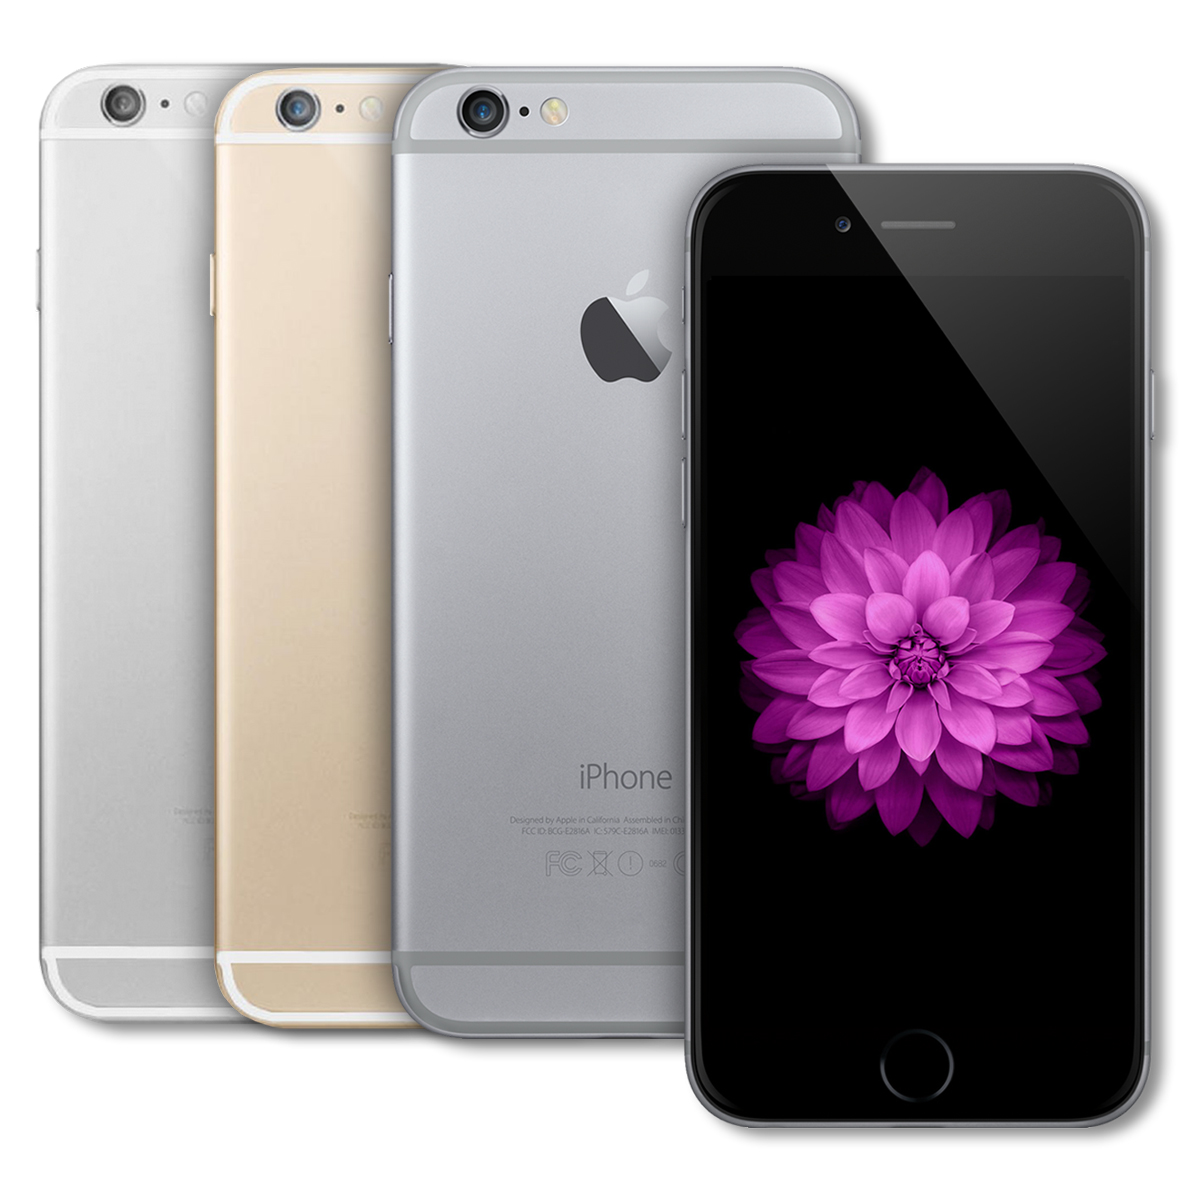 certified pre owned apple iphone 6 plus 16gb factory unlocked smartphone a1524 ebay. Black Bedroom Furniture Sets. Home Design Ideas